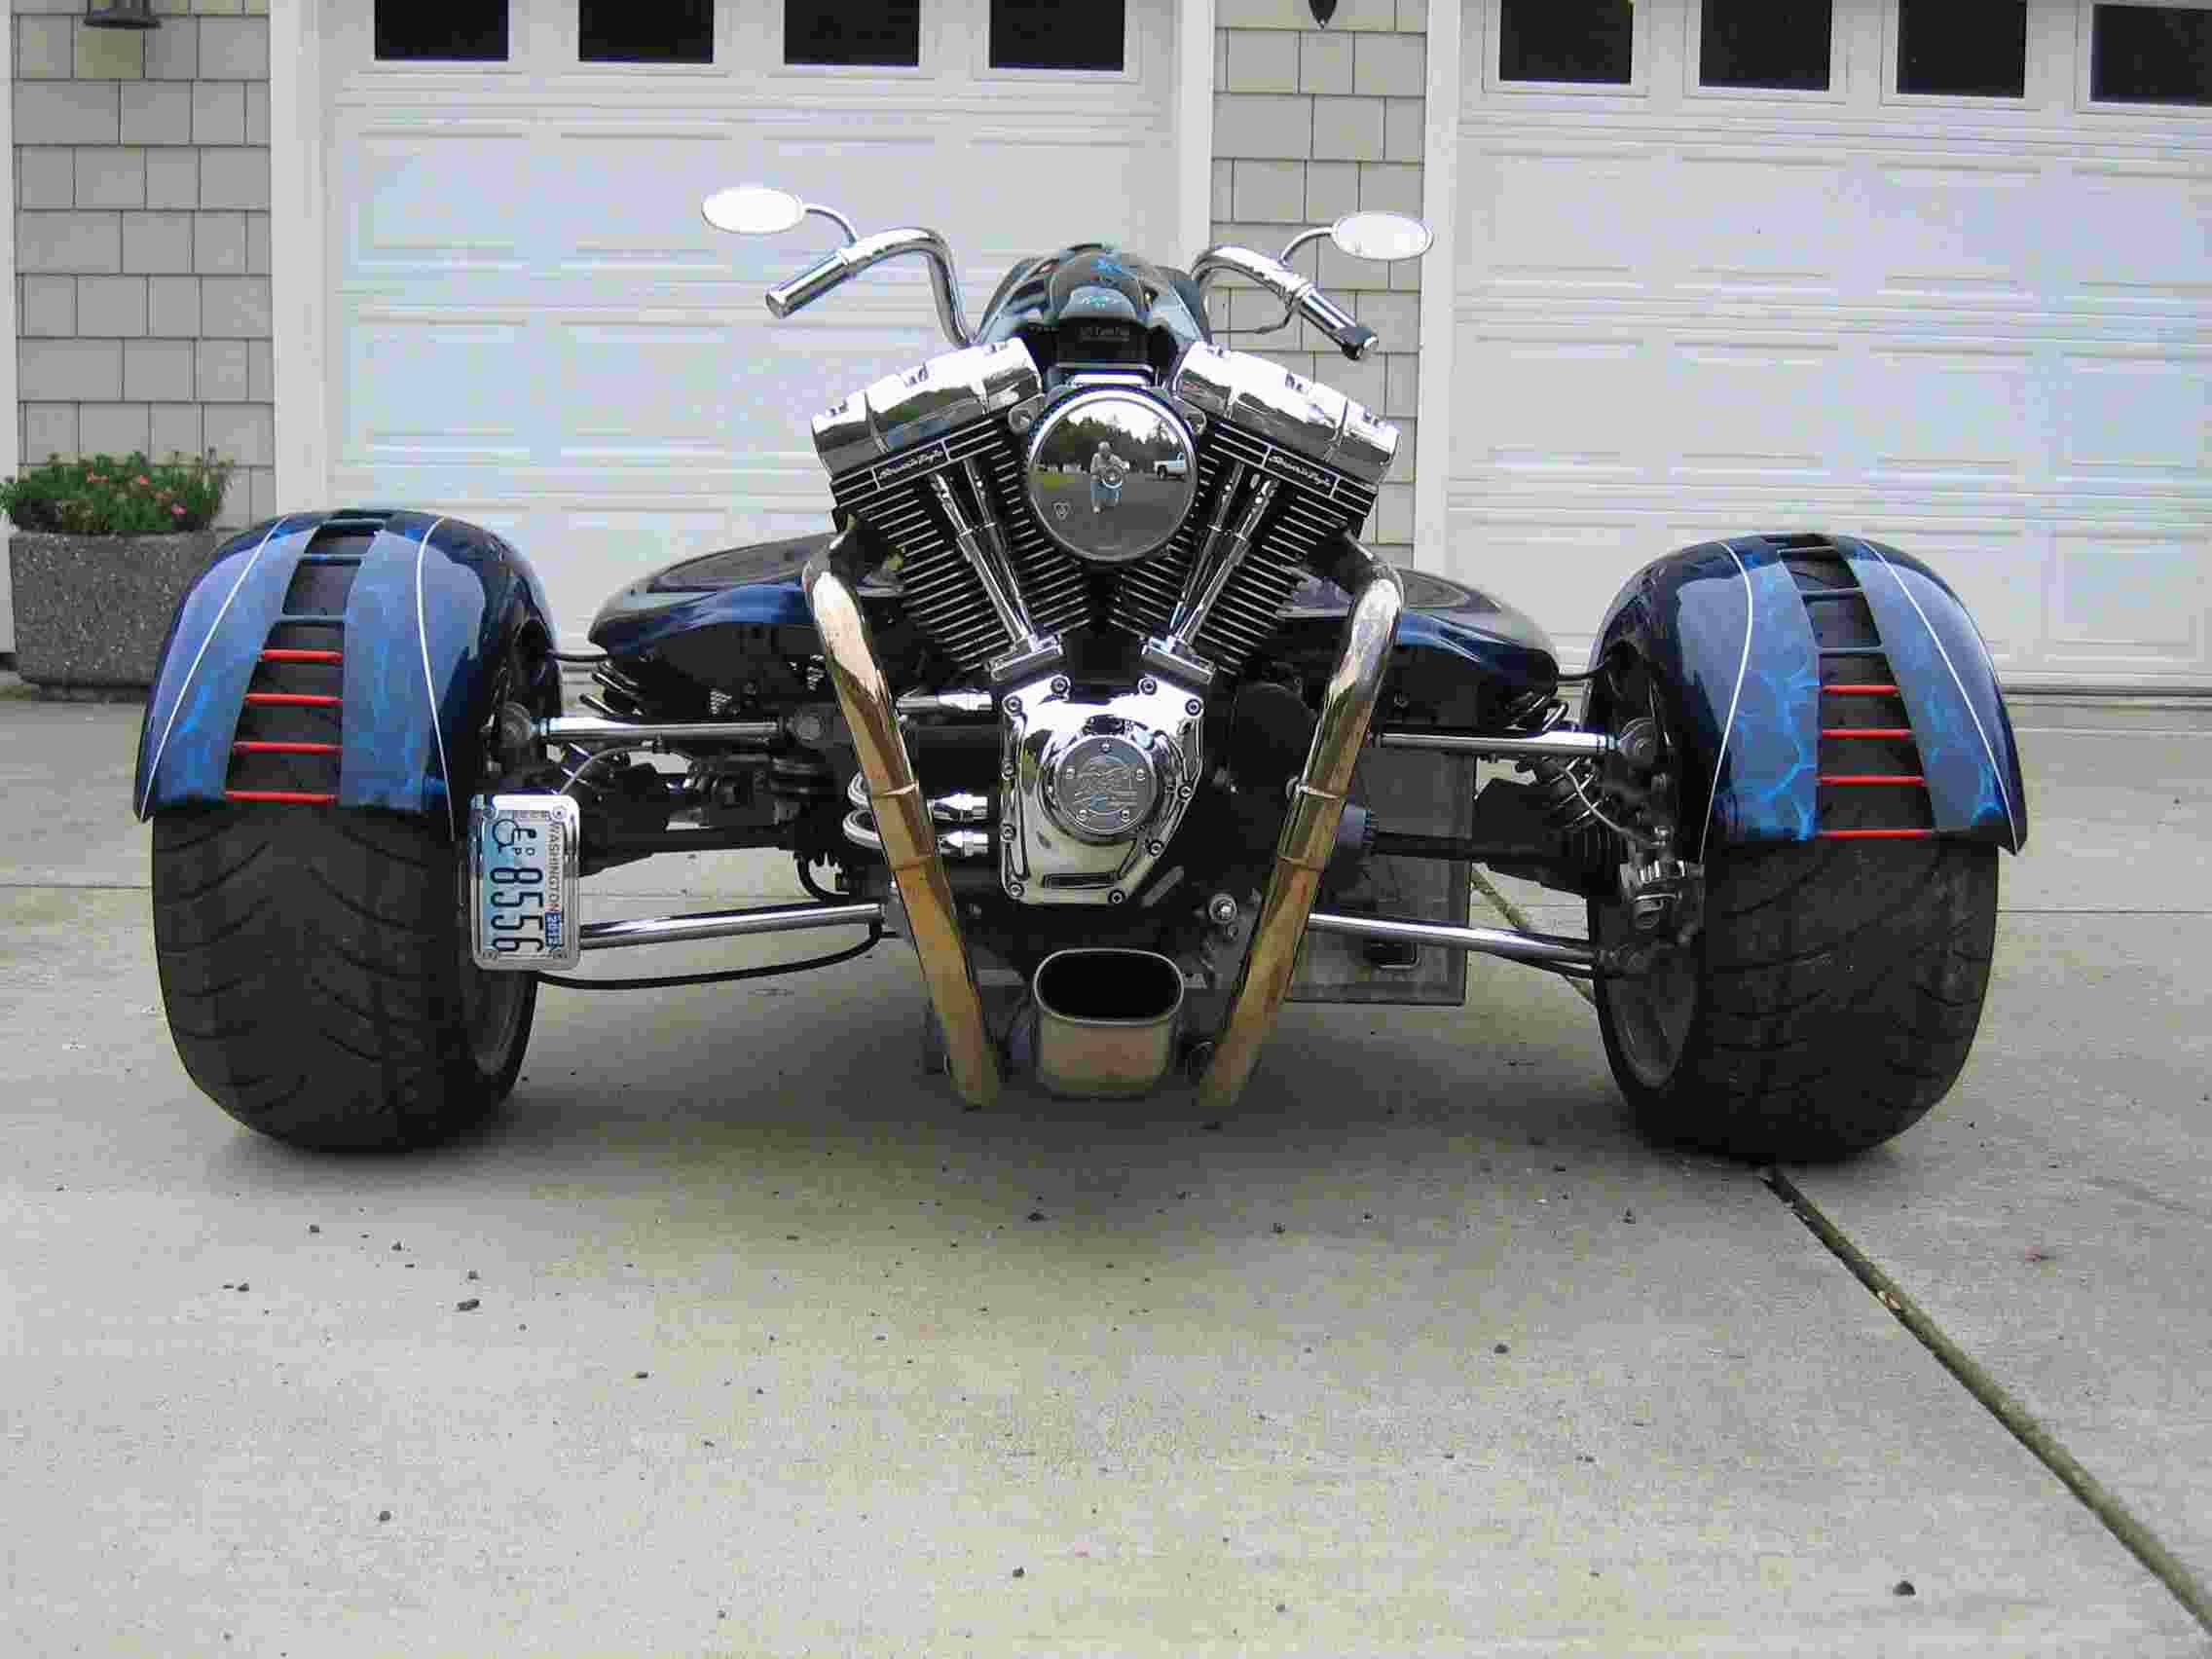 Radical trike using vw trans harley engine built by ken woerle